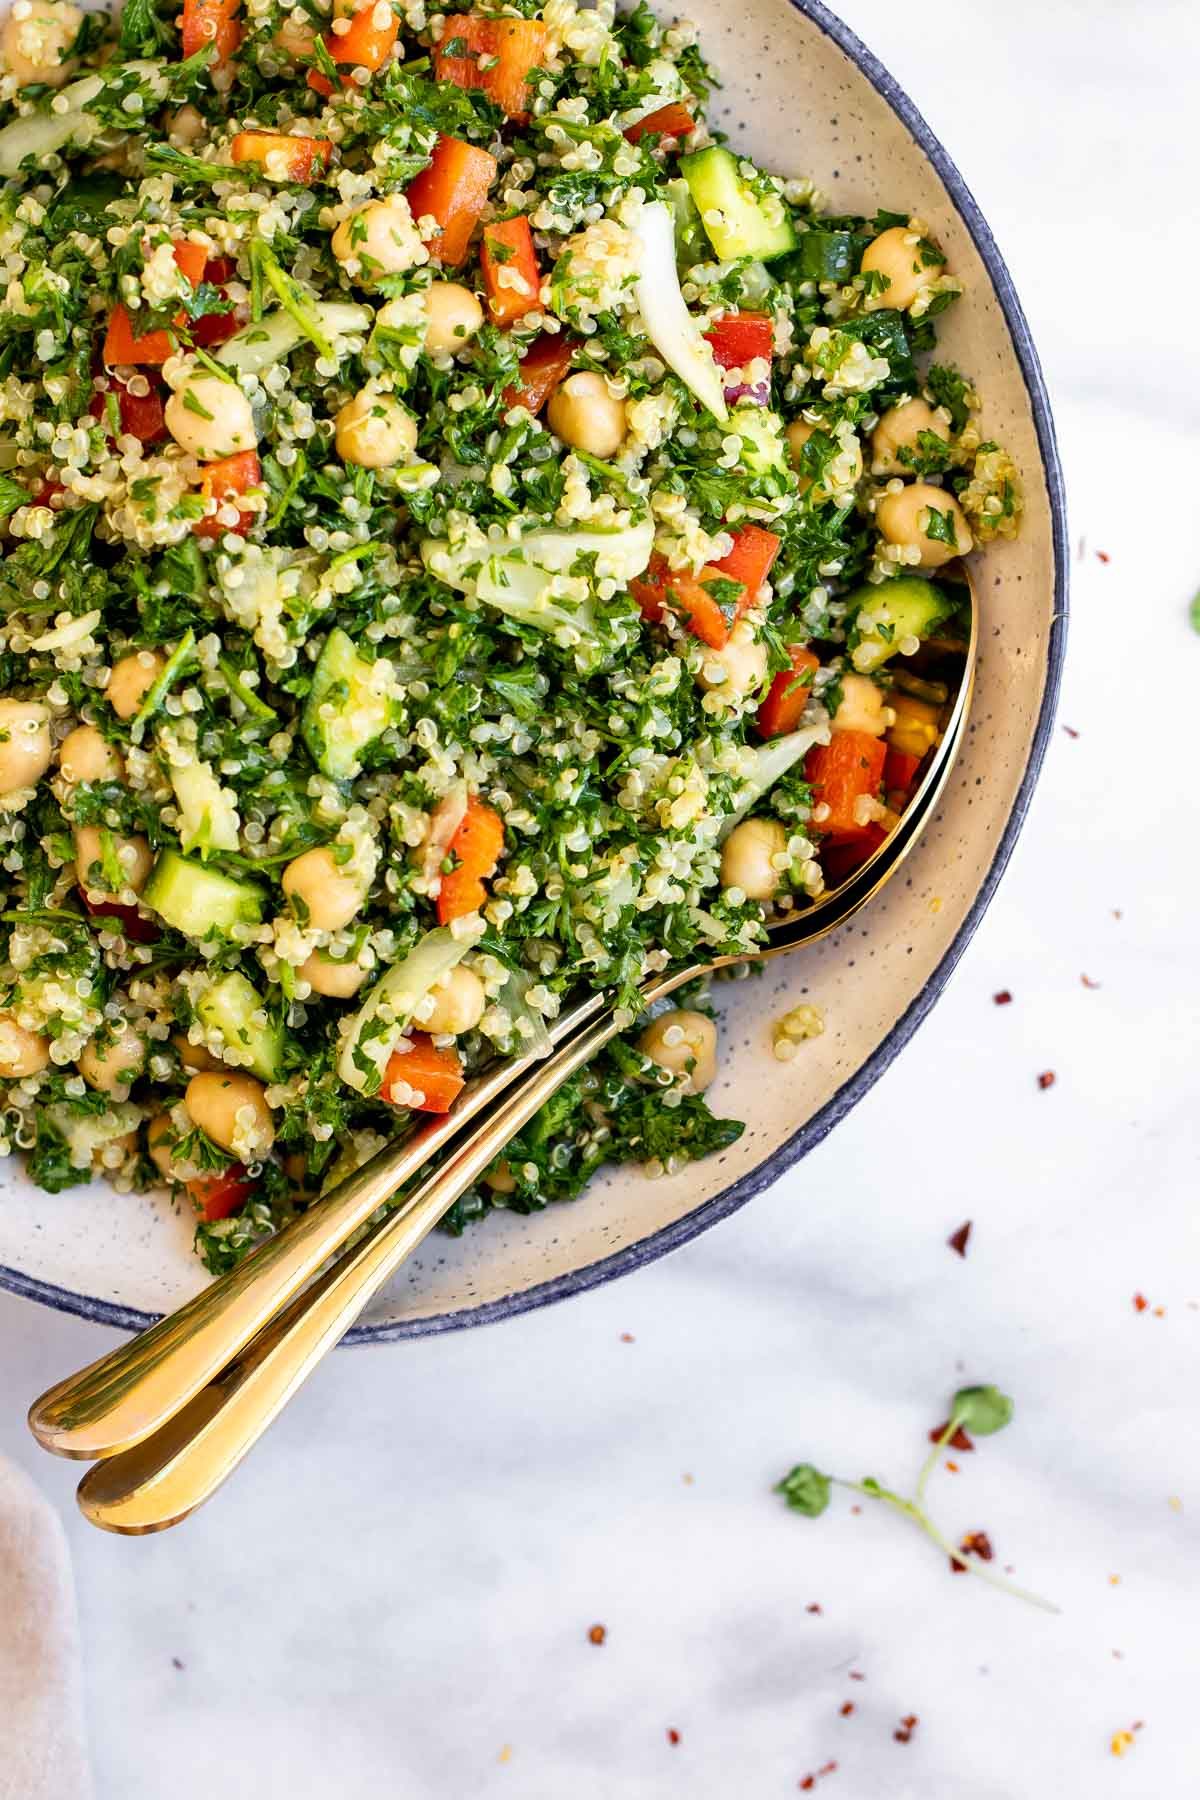 Final salad recipe in a large mixing bowl with two spoons on the side.